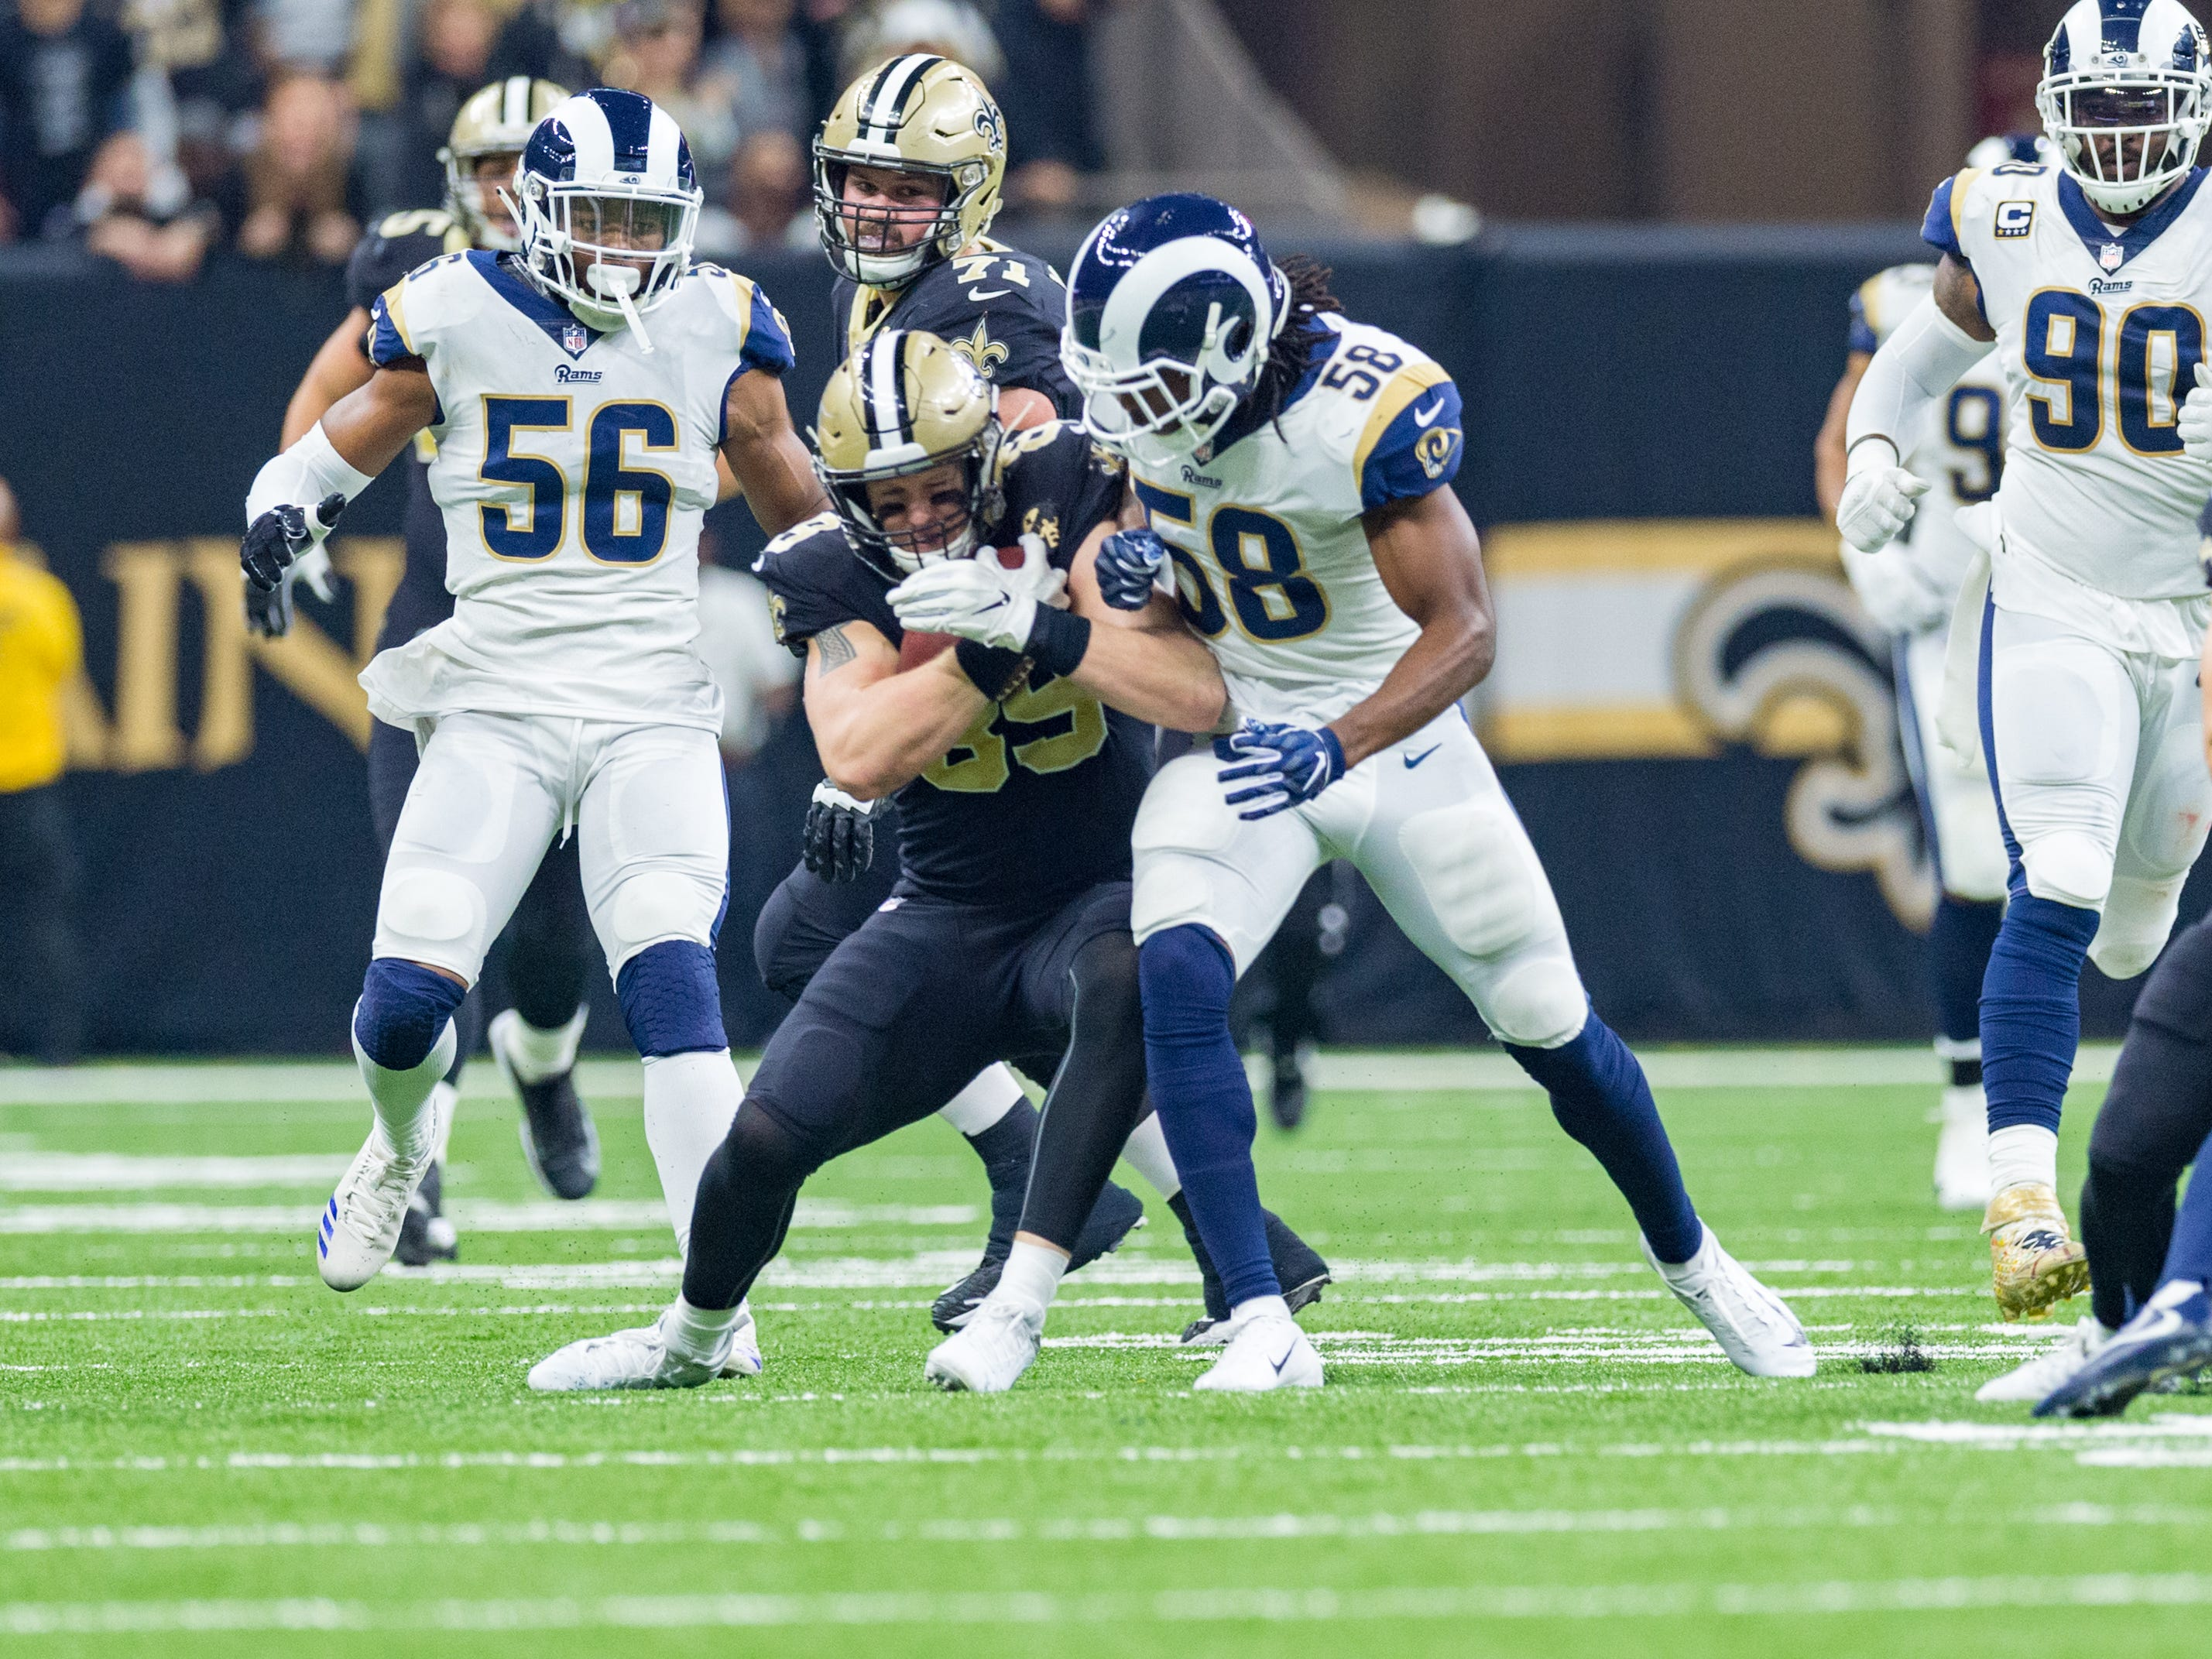 No penalty called as Rams linebacker Corey Littleton his Saints Tight end Josh Hill during the  NFC Championship playoff football game between the New Orleans Saints and the Los Angeles Rams at the Mercedes-Benz Superdome in New Orleans. Sunday, Jan. 20, 2019.